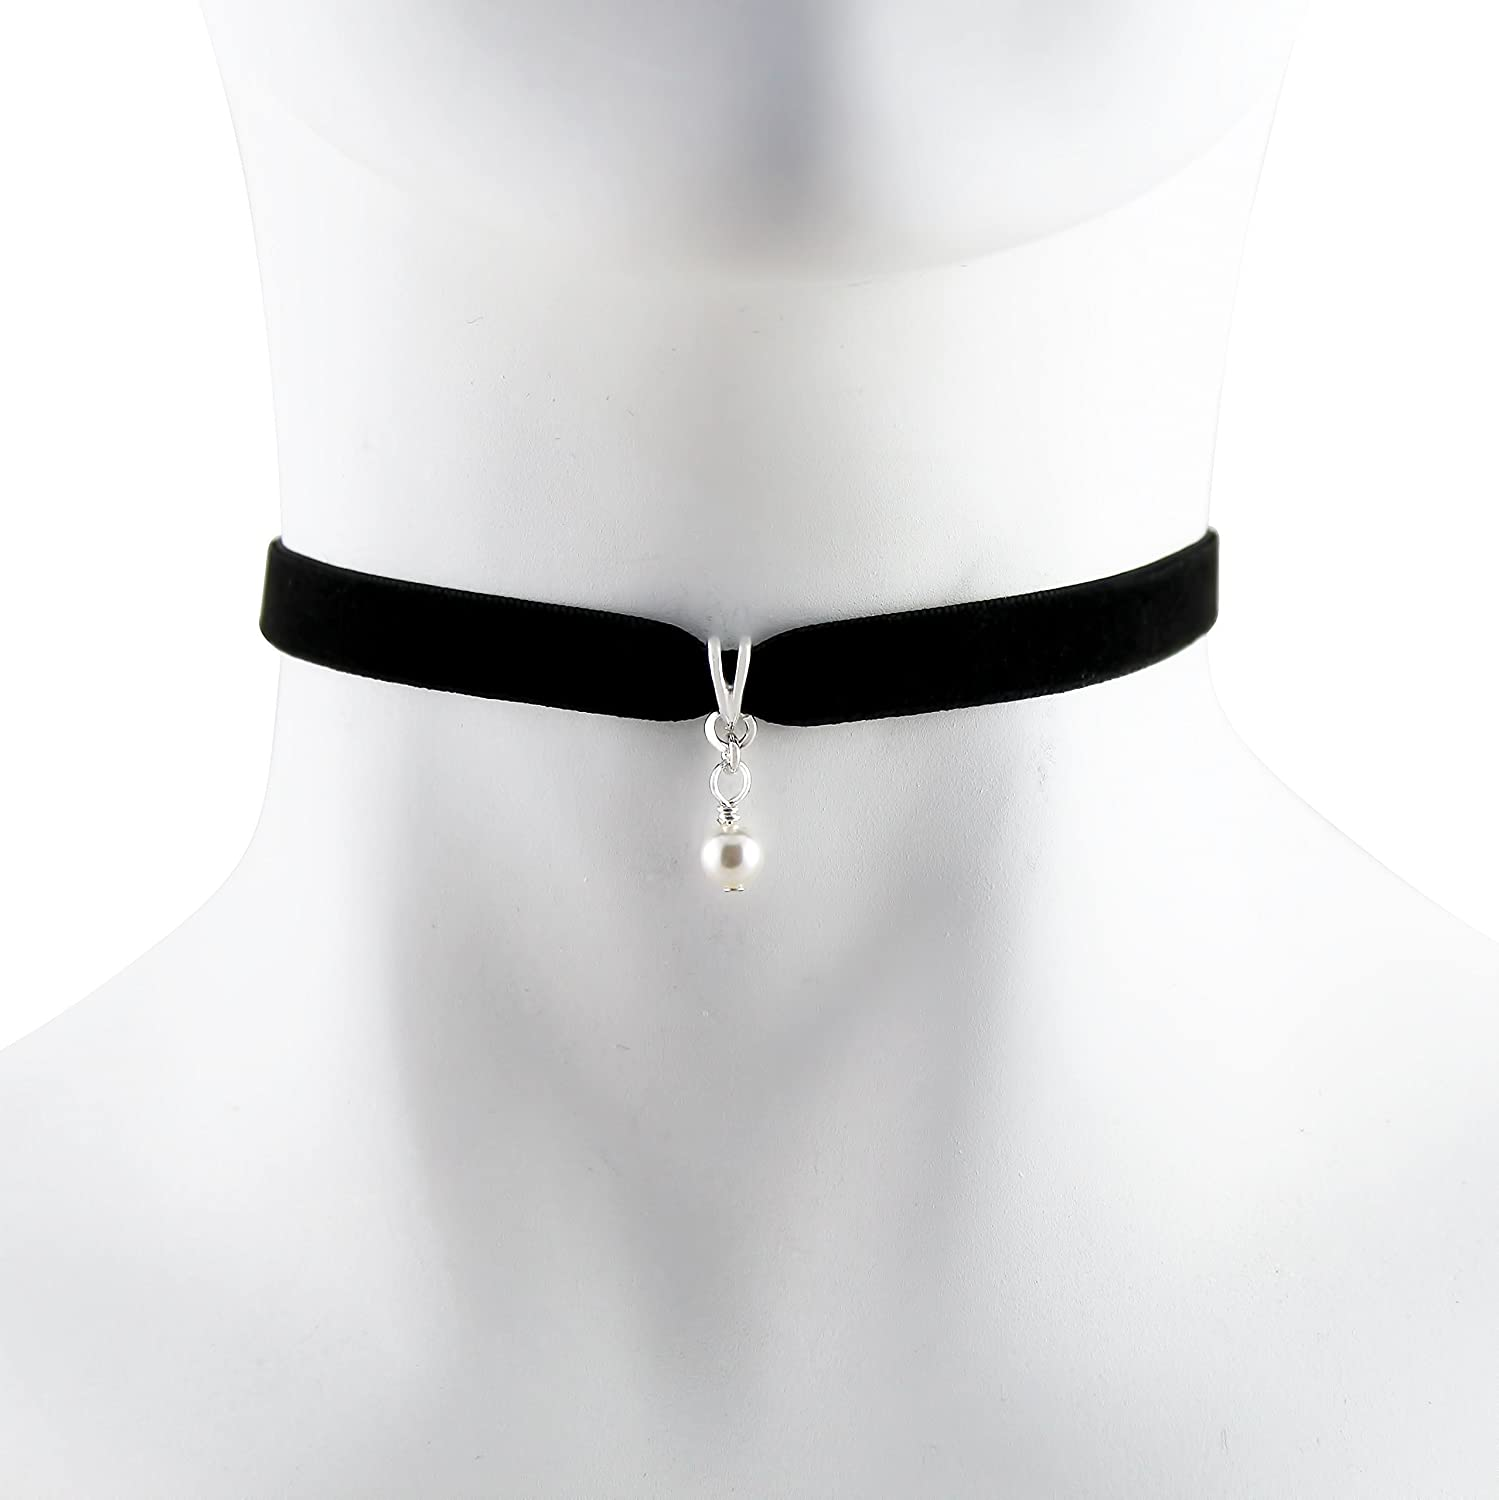 e185ef4ca94 Amazon.com  Arthlin White Glass Imitation Pearl Pendant on Black Velvet  Choker Necklace for Women